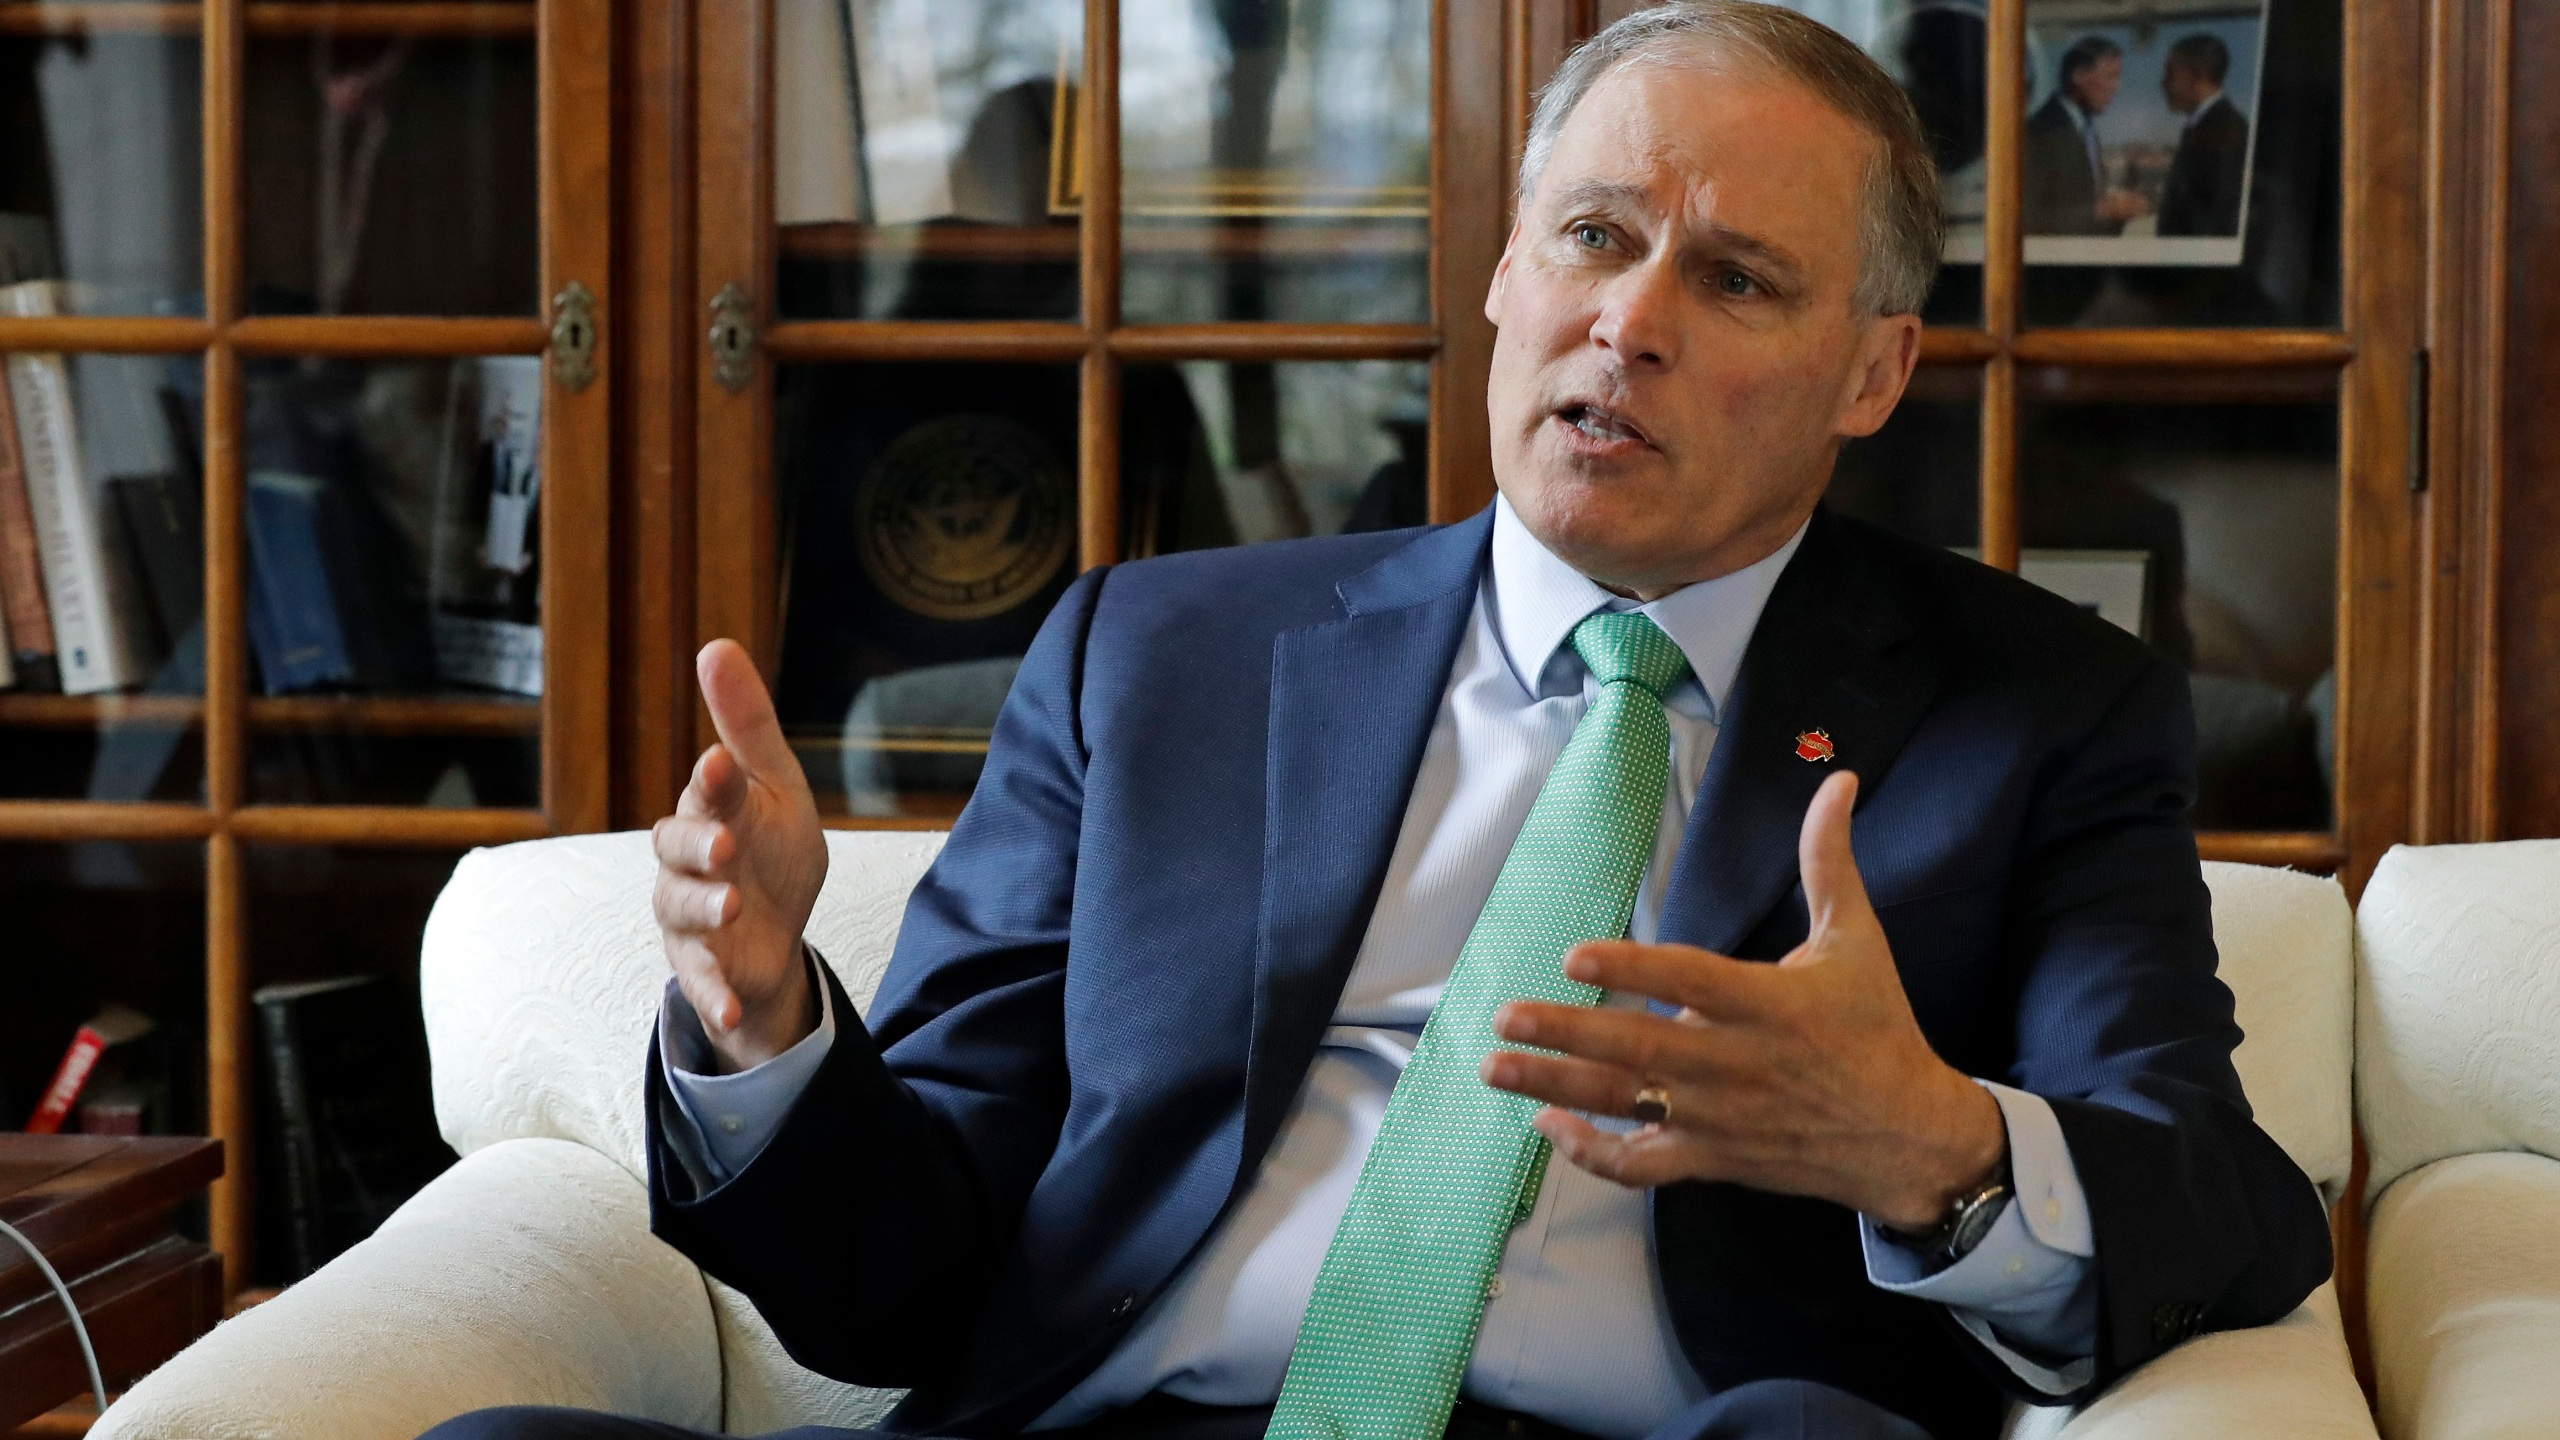 Election_2020_Inslee_21145-159532.jpg54453574